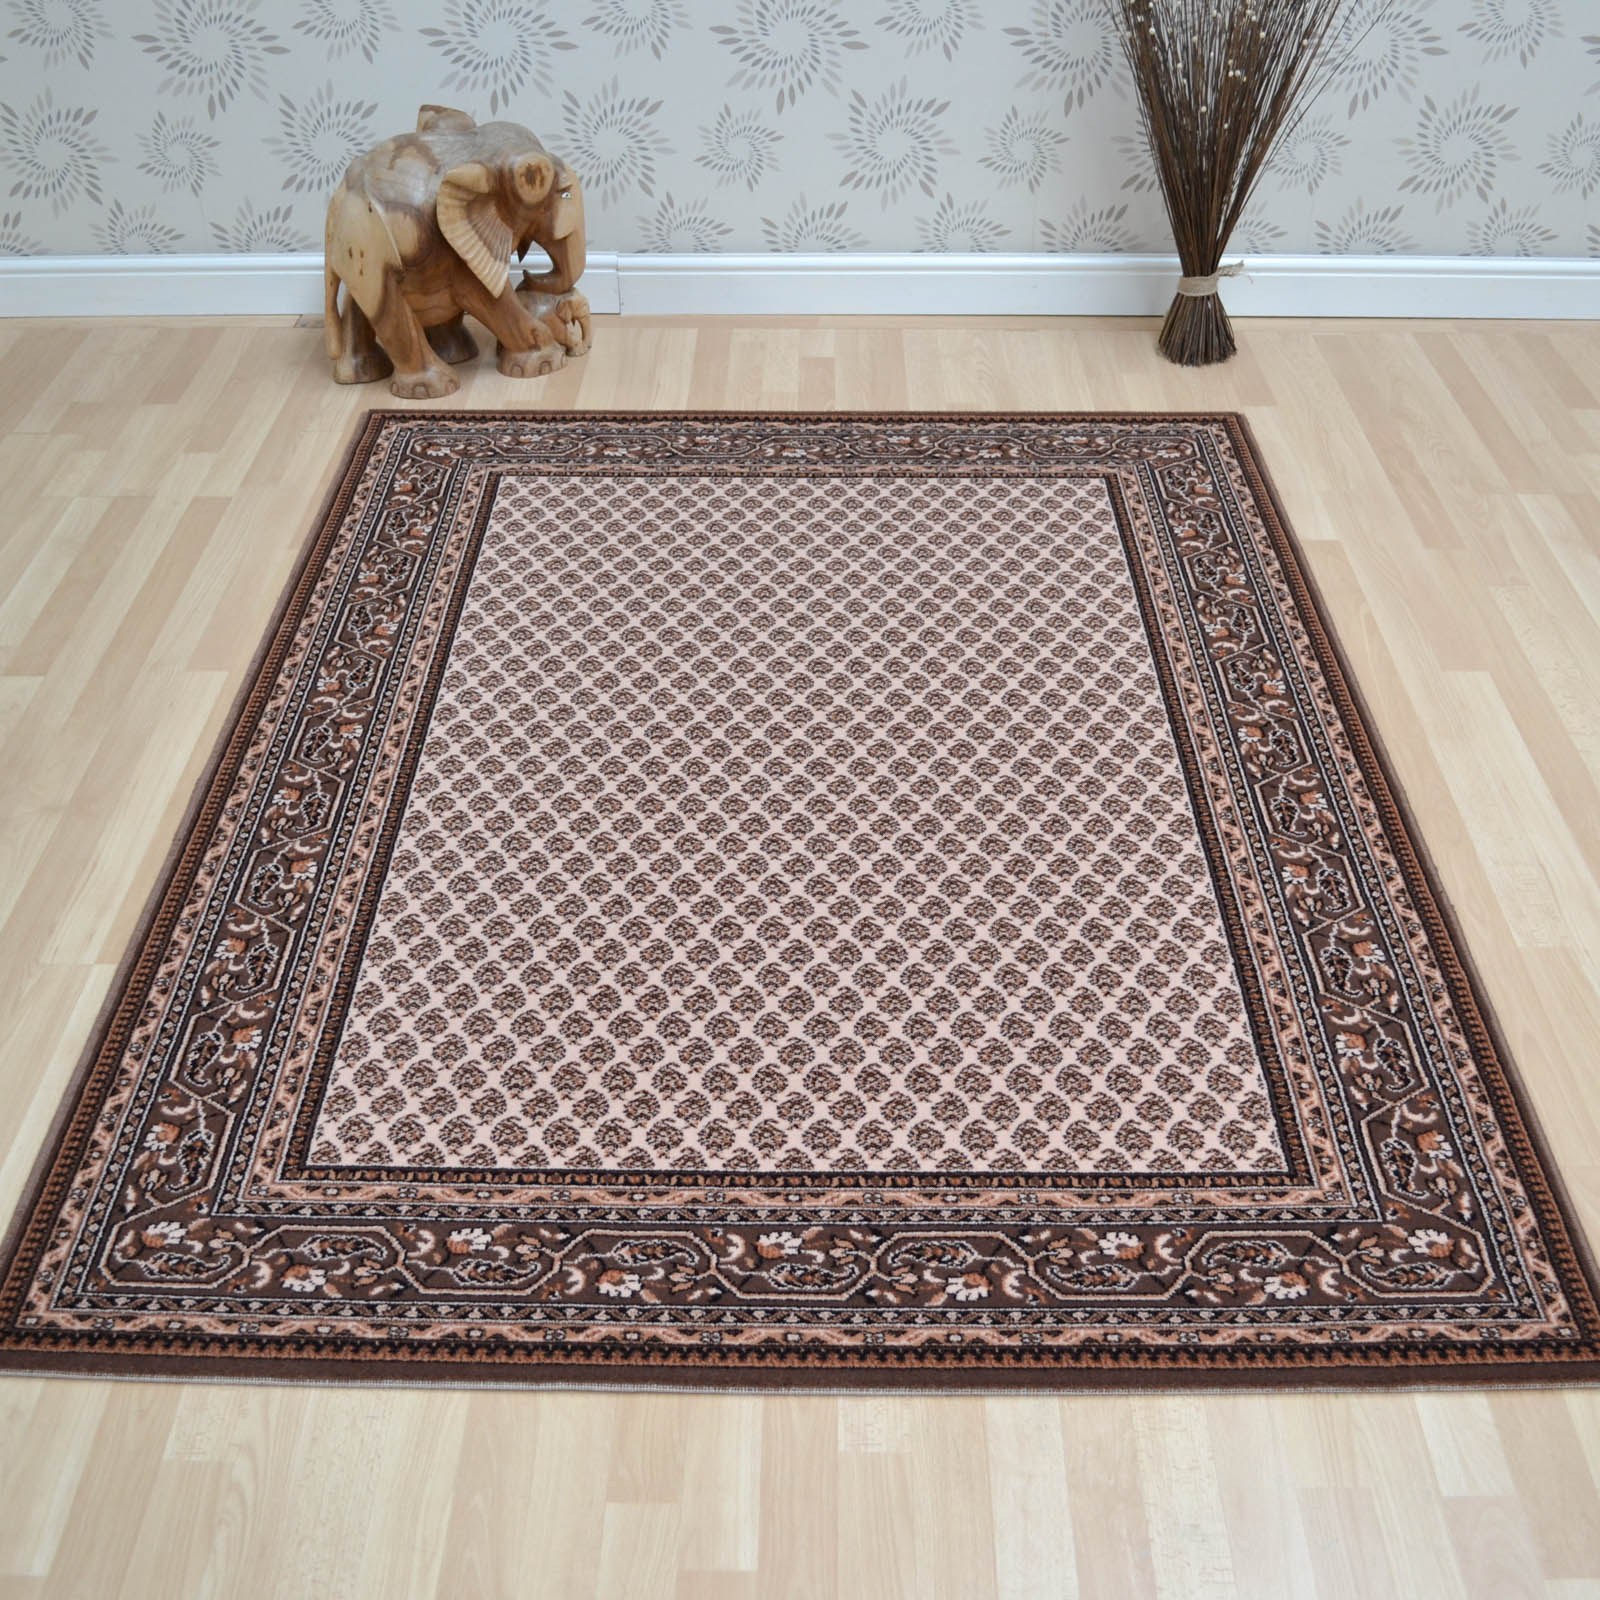 Lano Royal Rugs 1581 504 Beige Brown